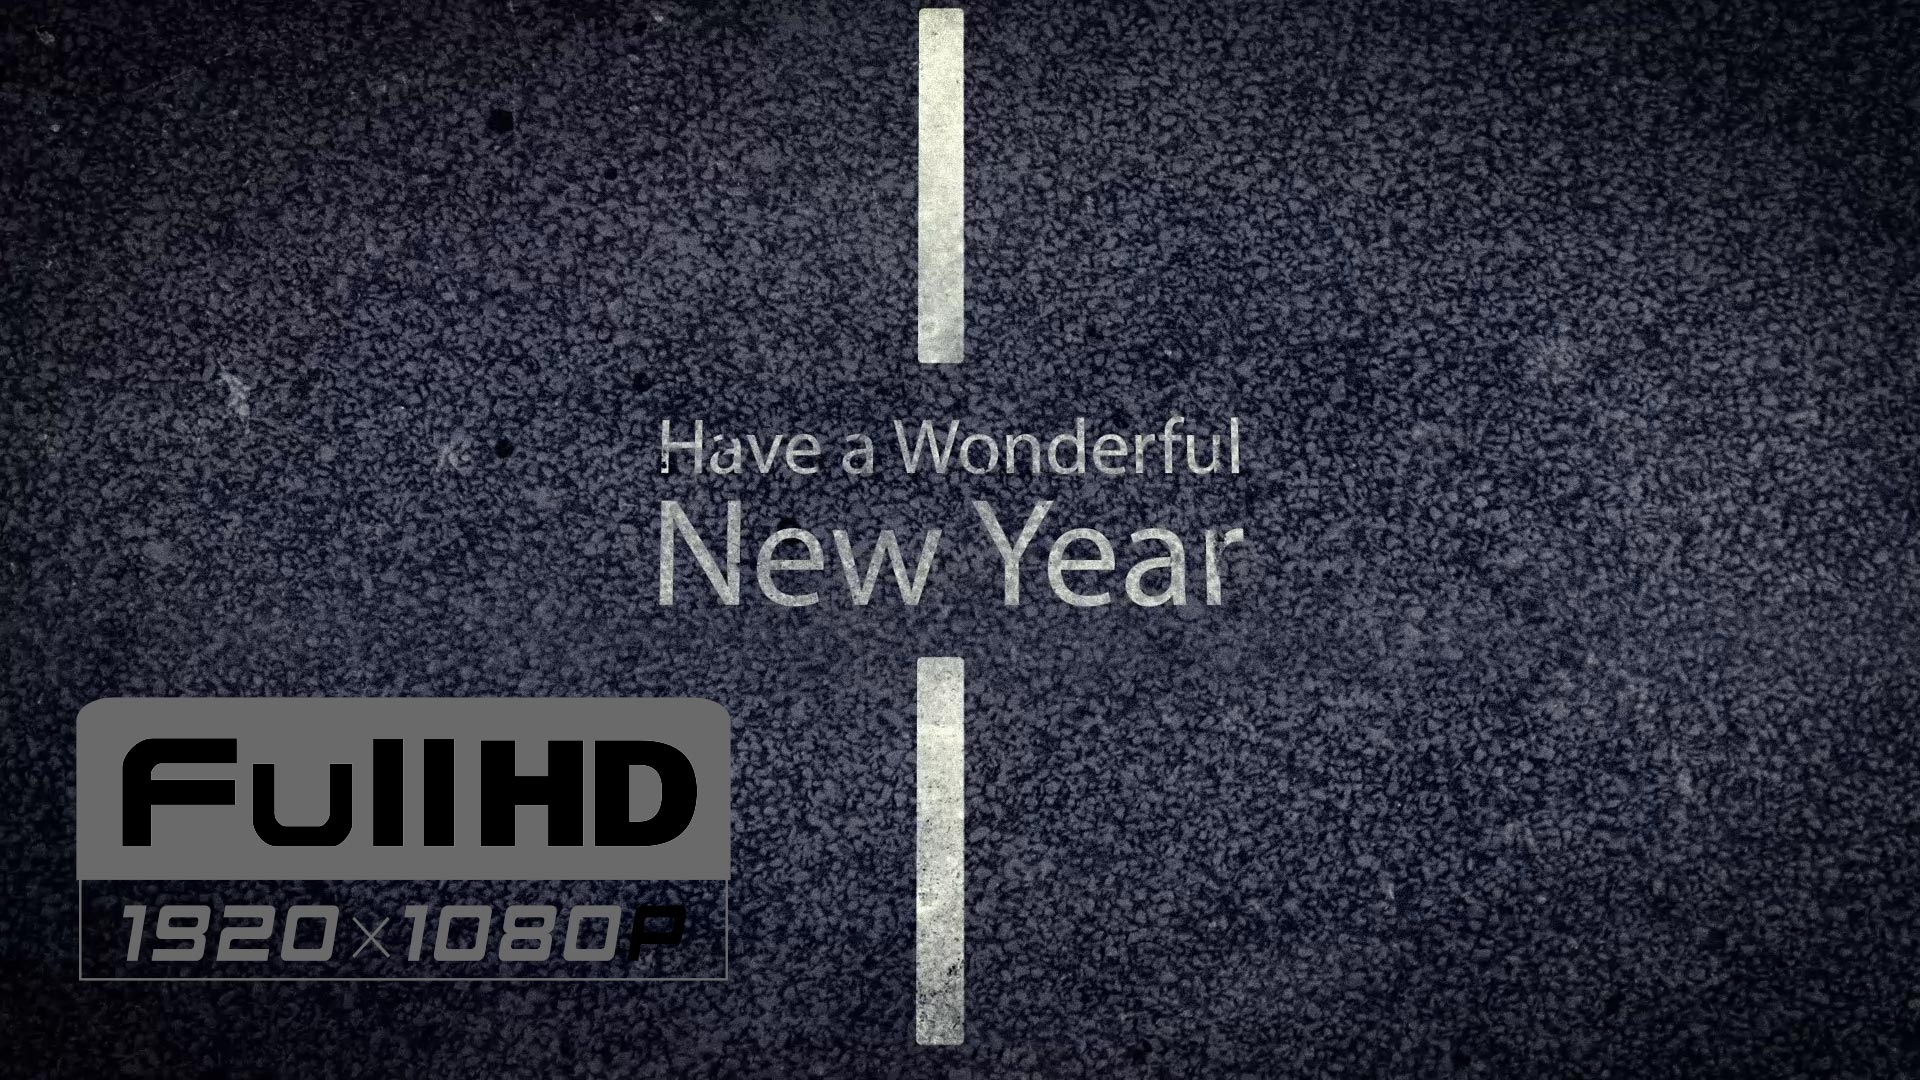 Happy new year wishes 2018 new year greetings moving background happy new year wishes 2018 new year greetings moving background video all design creative m4hsunfo